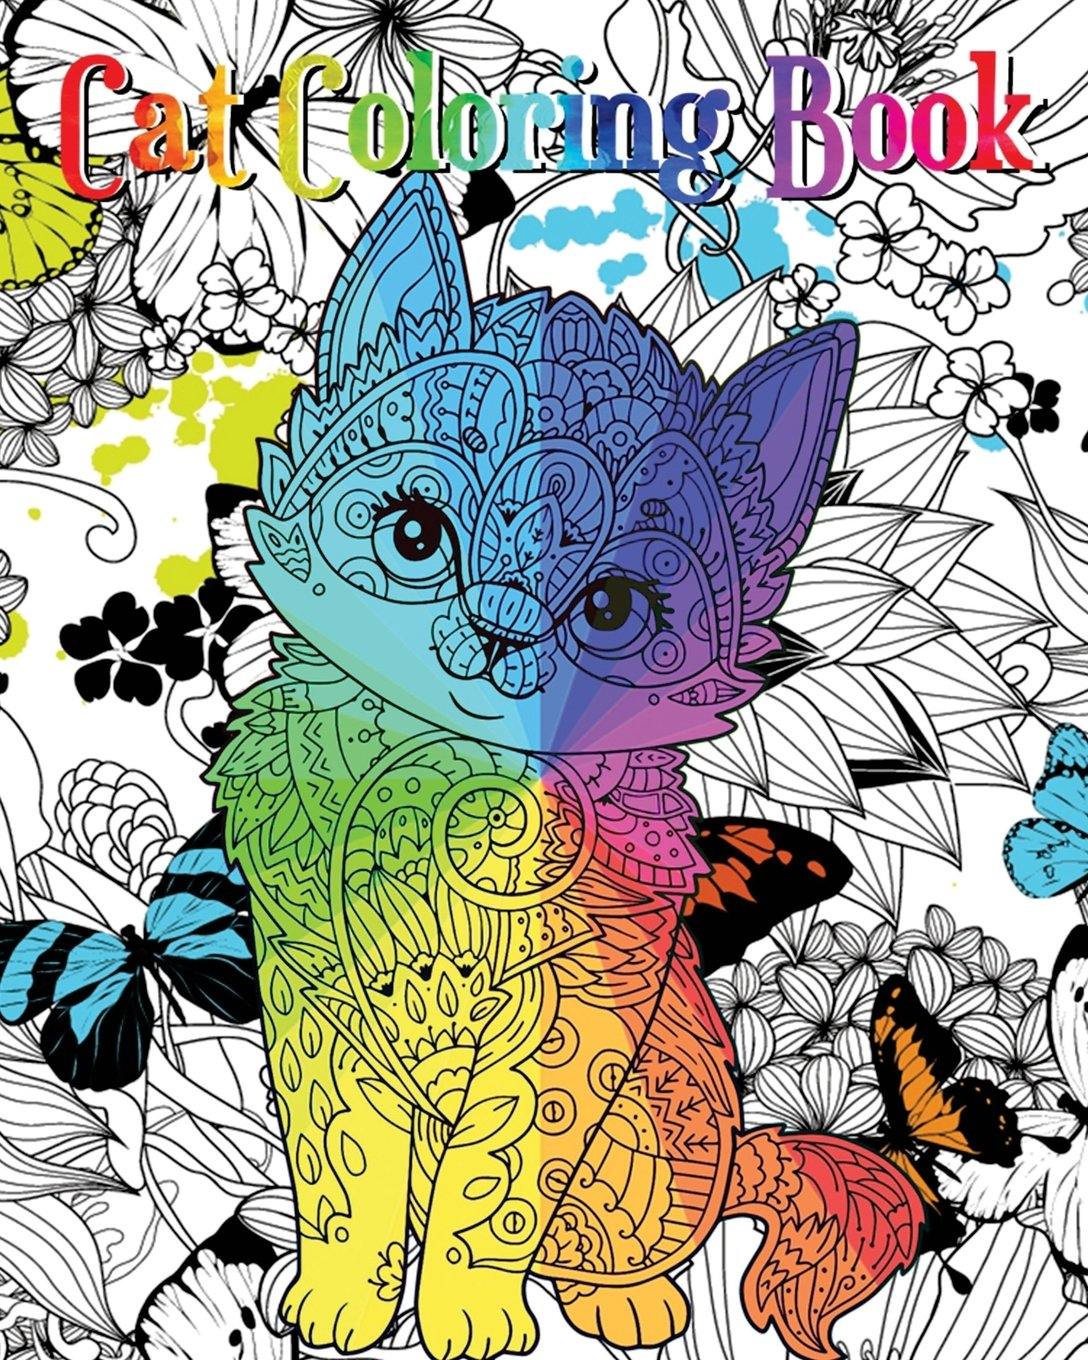 Cat Coloring Book An Adult Coloring Book With Fun Easy And Relaxing Coloring Pages Coloring Books For Cat Lover Rainnie Perosa 9781718895188 Amazon Com Books